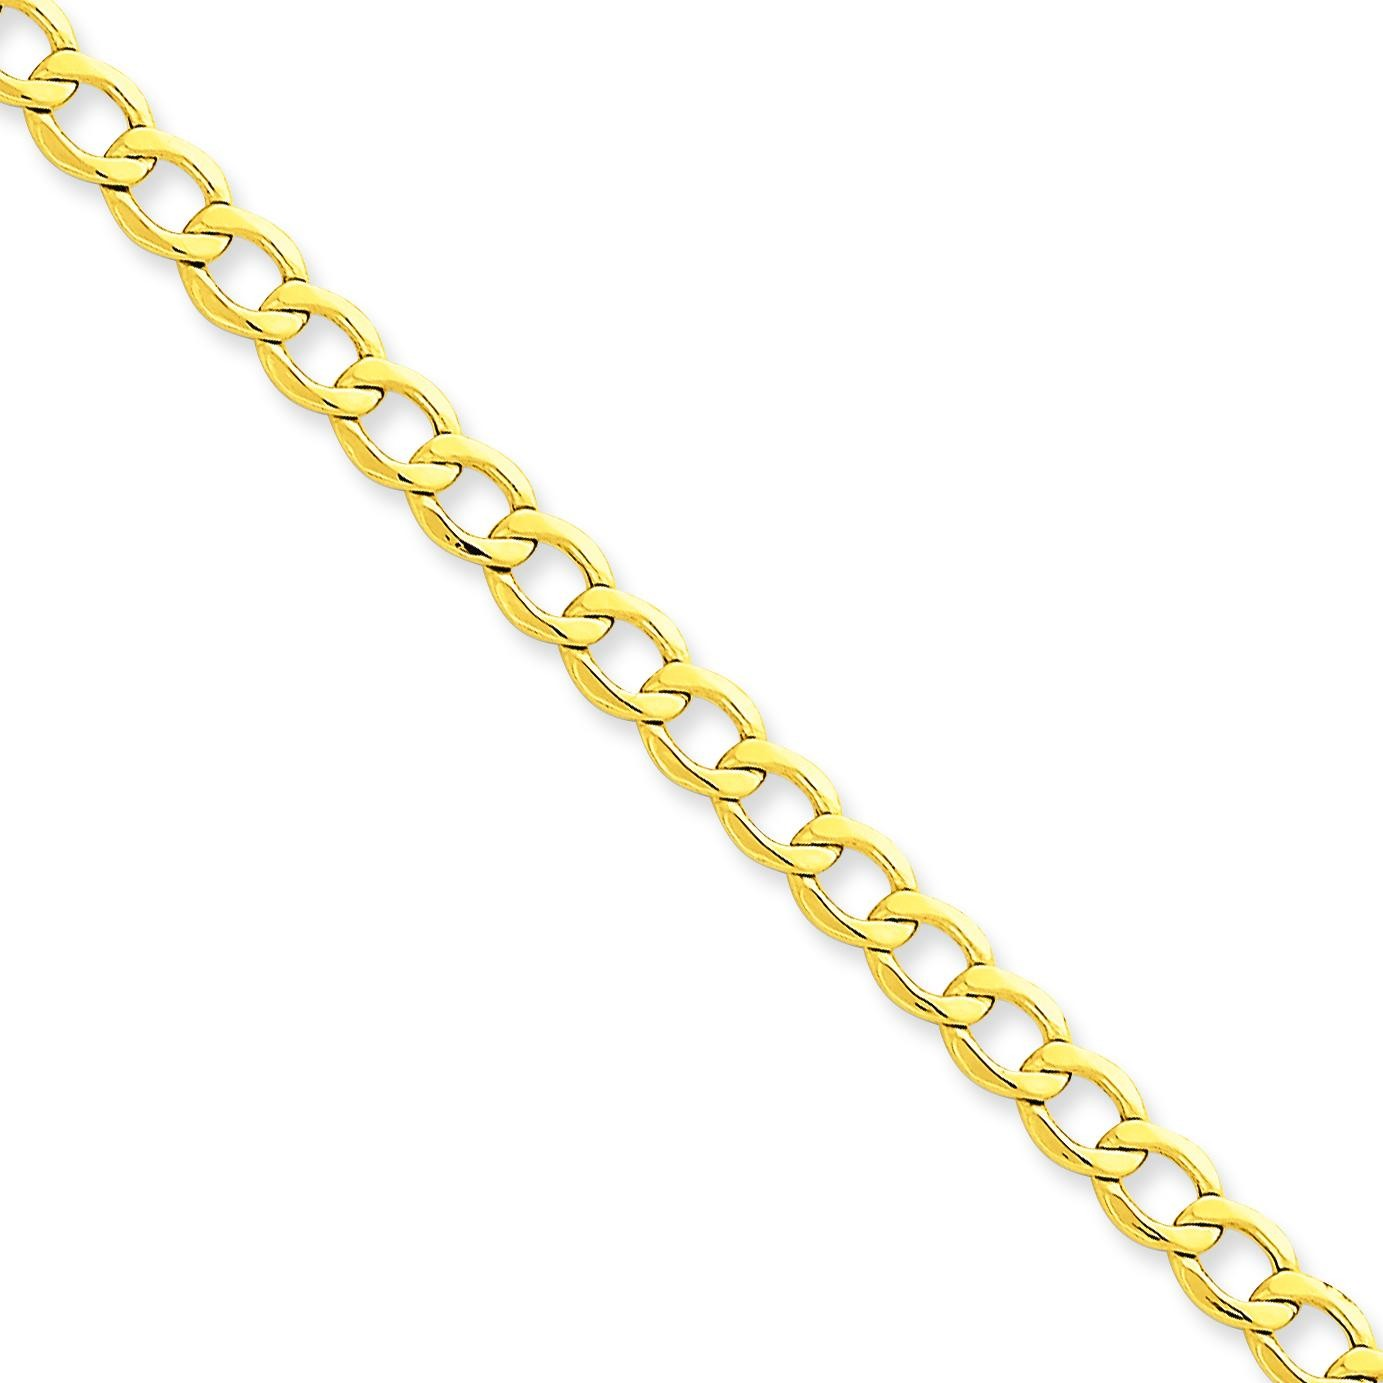 14k Yellow Gold 7 inch 5.25 mm Light Curb Chain Bracelet